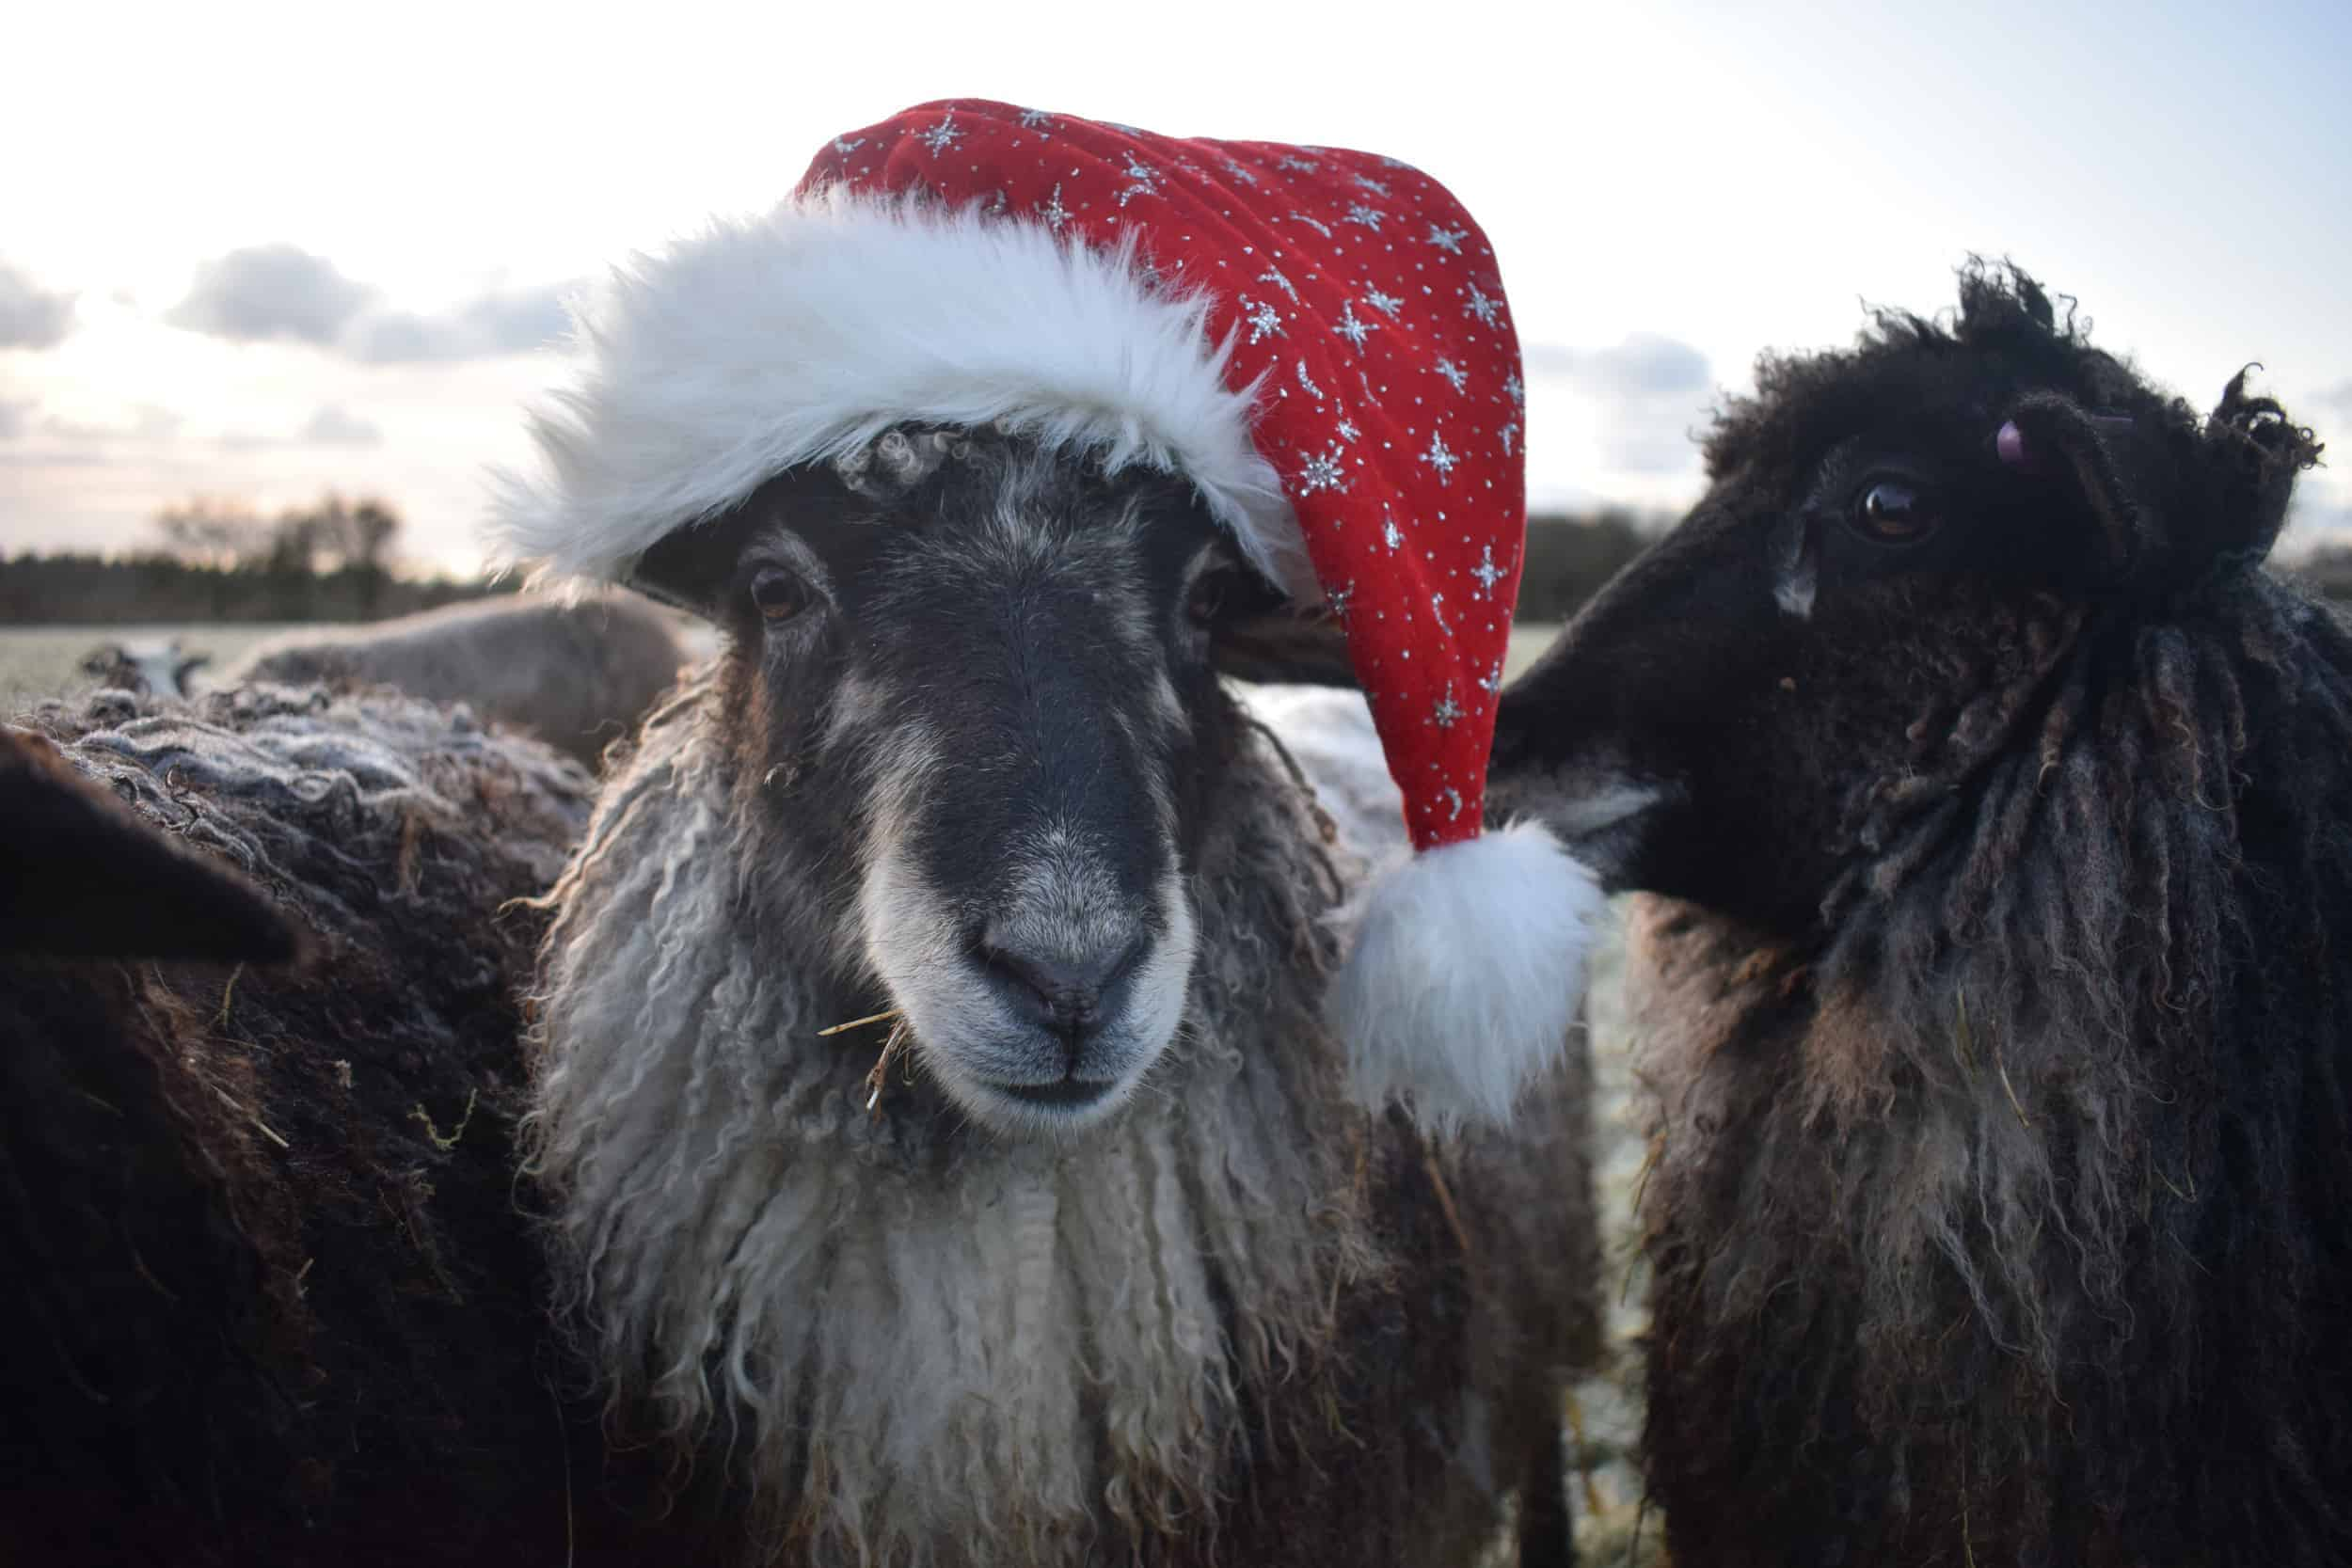 Jemima sheep santa hat christmas farm animals coloured leicester longwool gotland sheep shetland